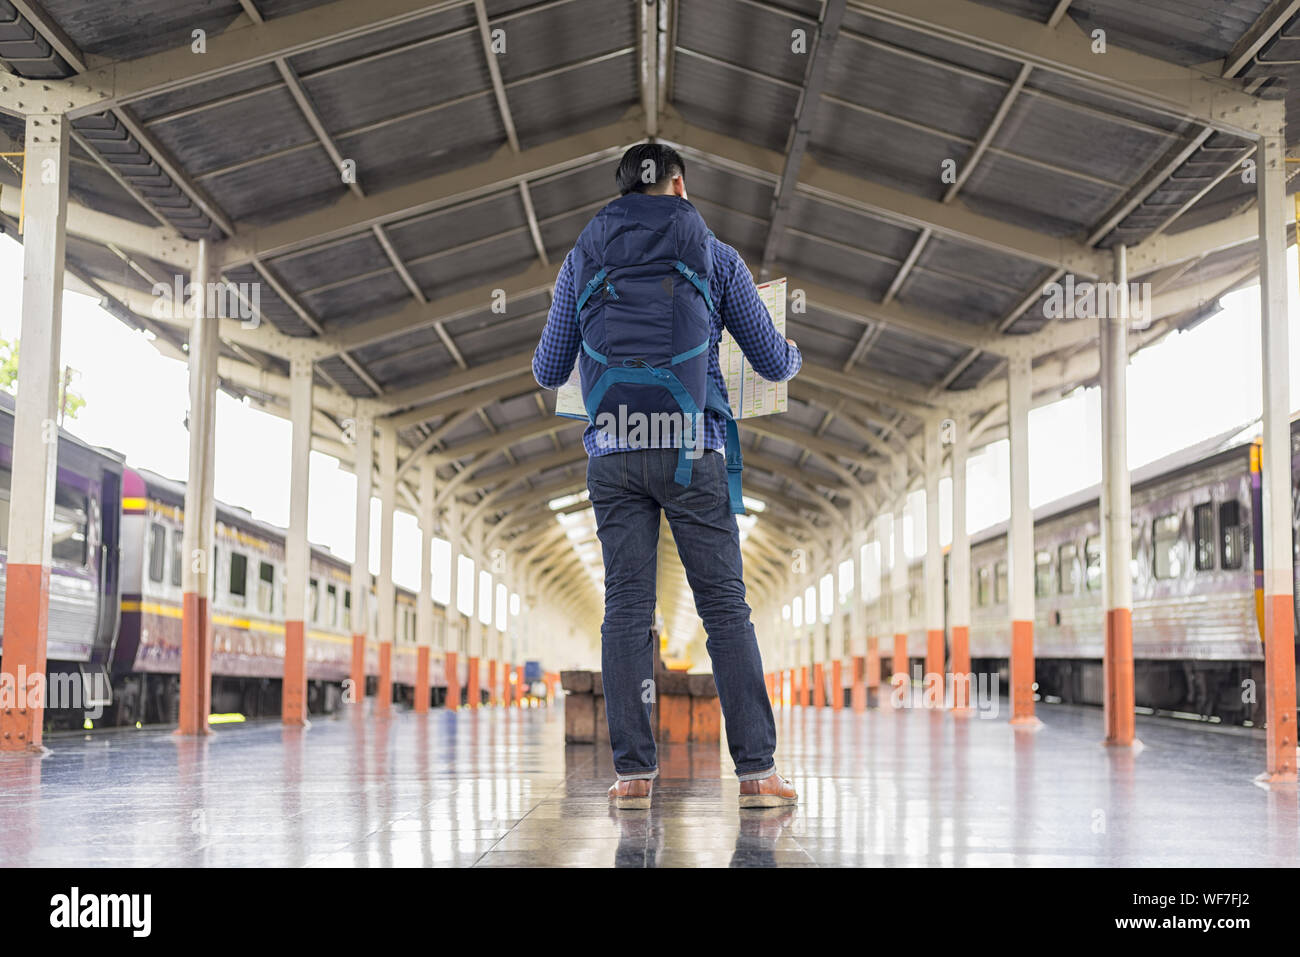 Full Length Of Tourist Reading Map While Standing At Railroad Station Platform Stock Photo